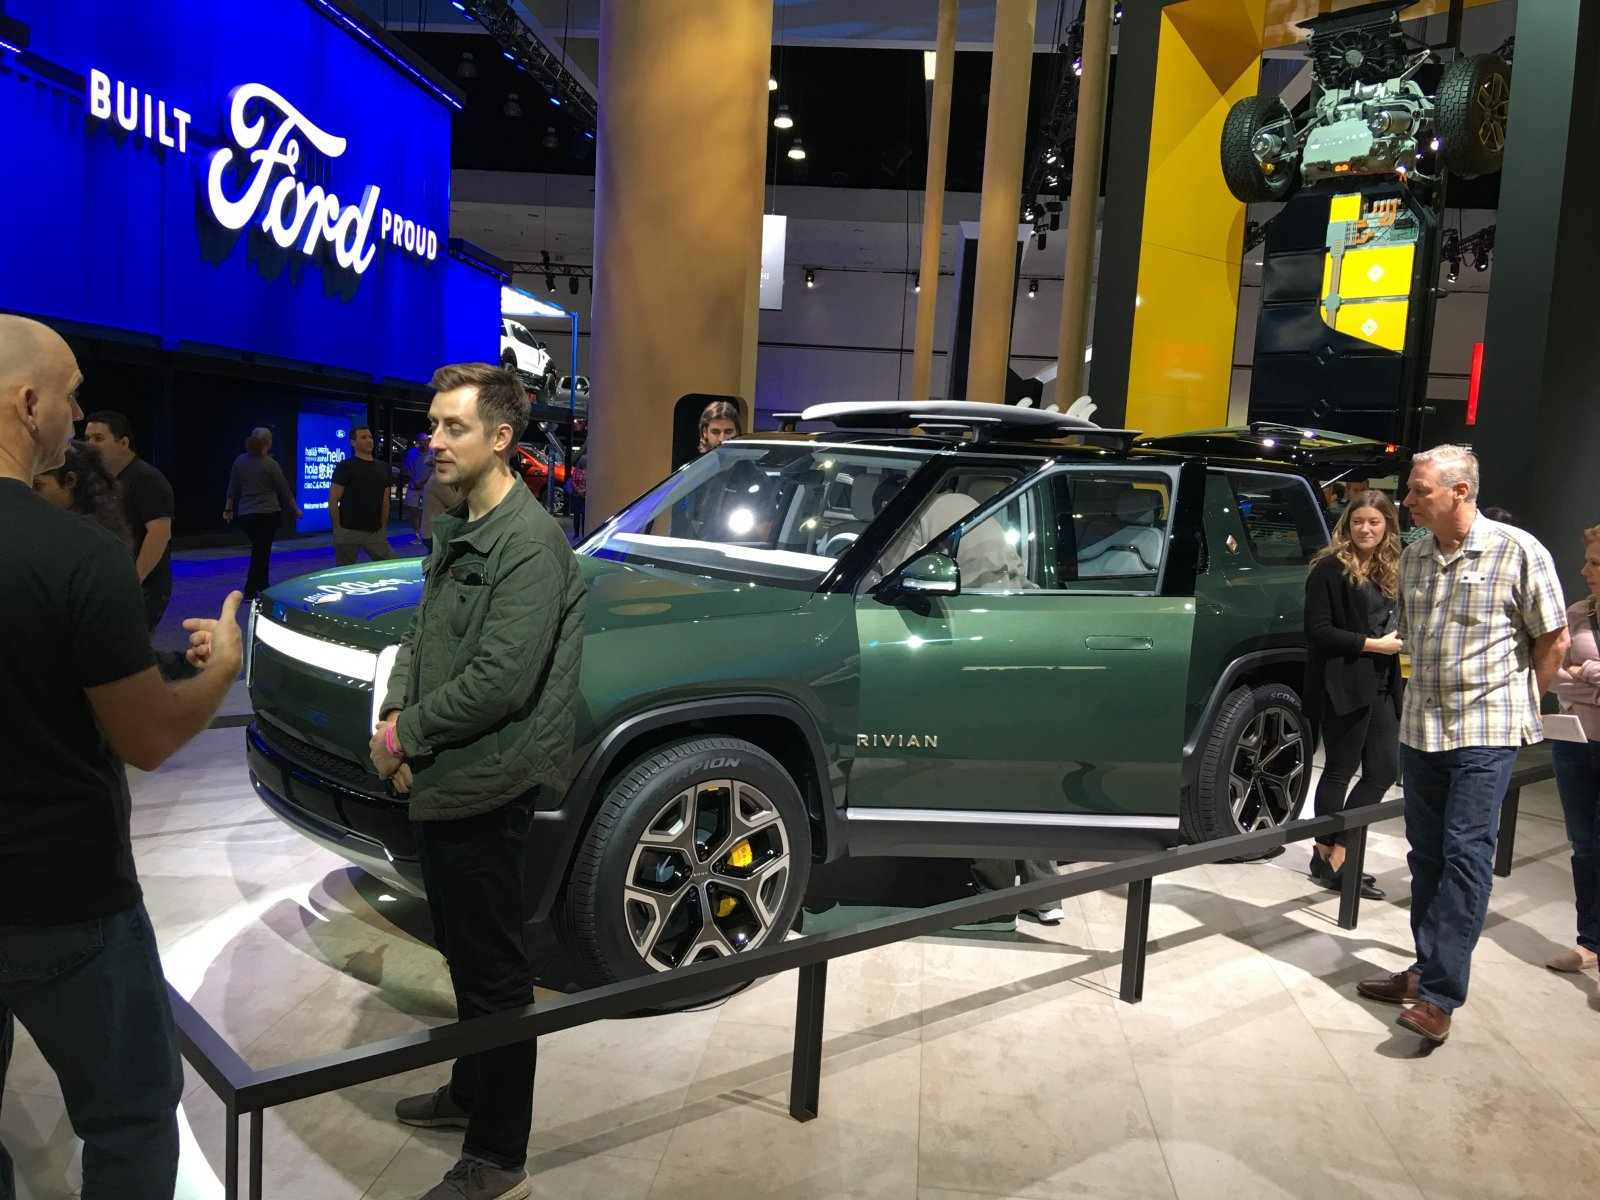 Click image for larger version  Name:Rivian SUV.jpg Views:47 Size:310.2 KB ID:329304